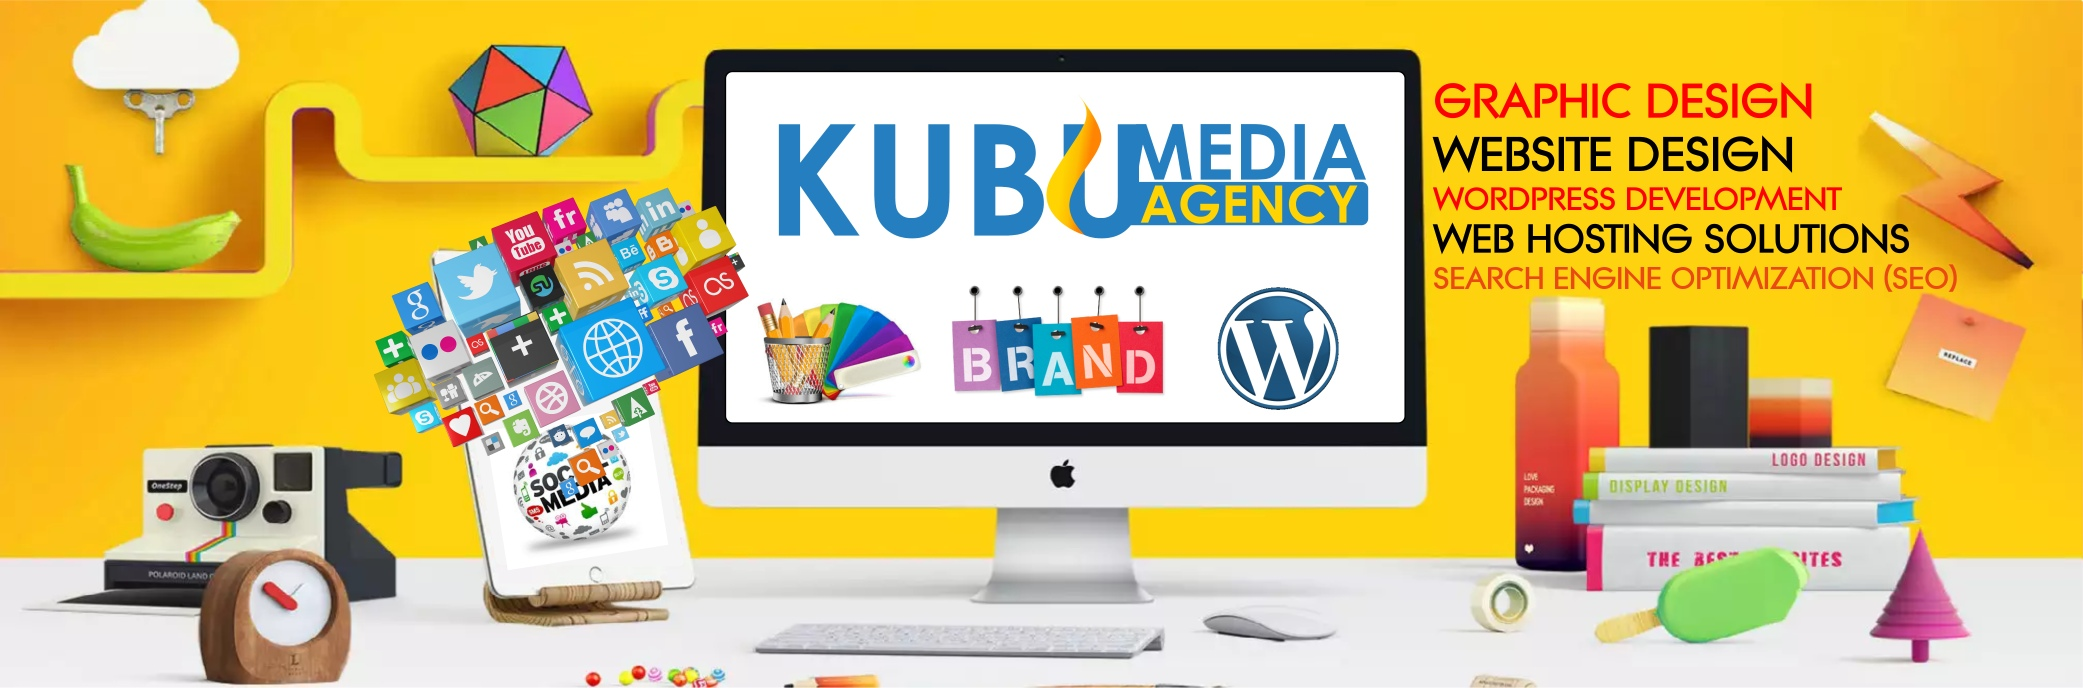 d6ad8e5d46 Full List of Our Services - Kubumedia Agency